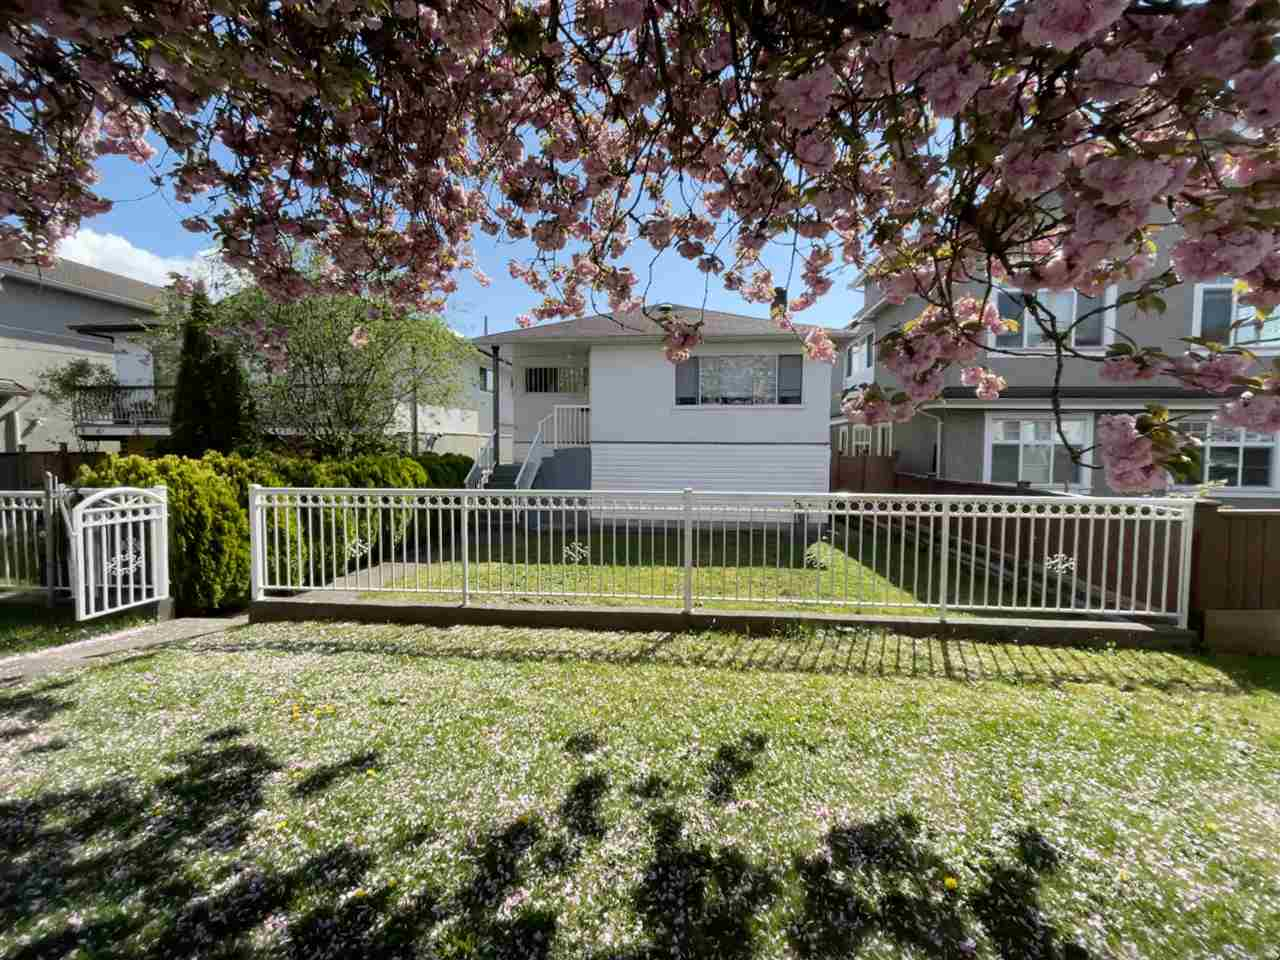 3016 HORLEY STREET - Collingwood VE House/Single Family for sale, 4 Bedrooms (R2572370) - #1